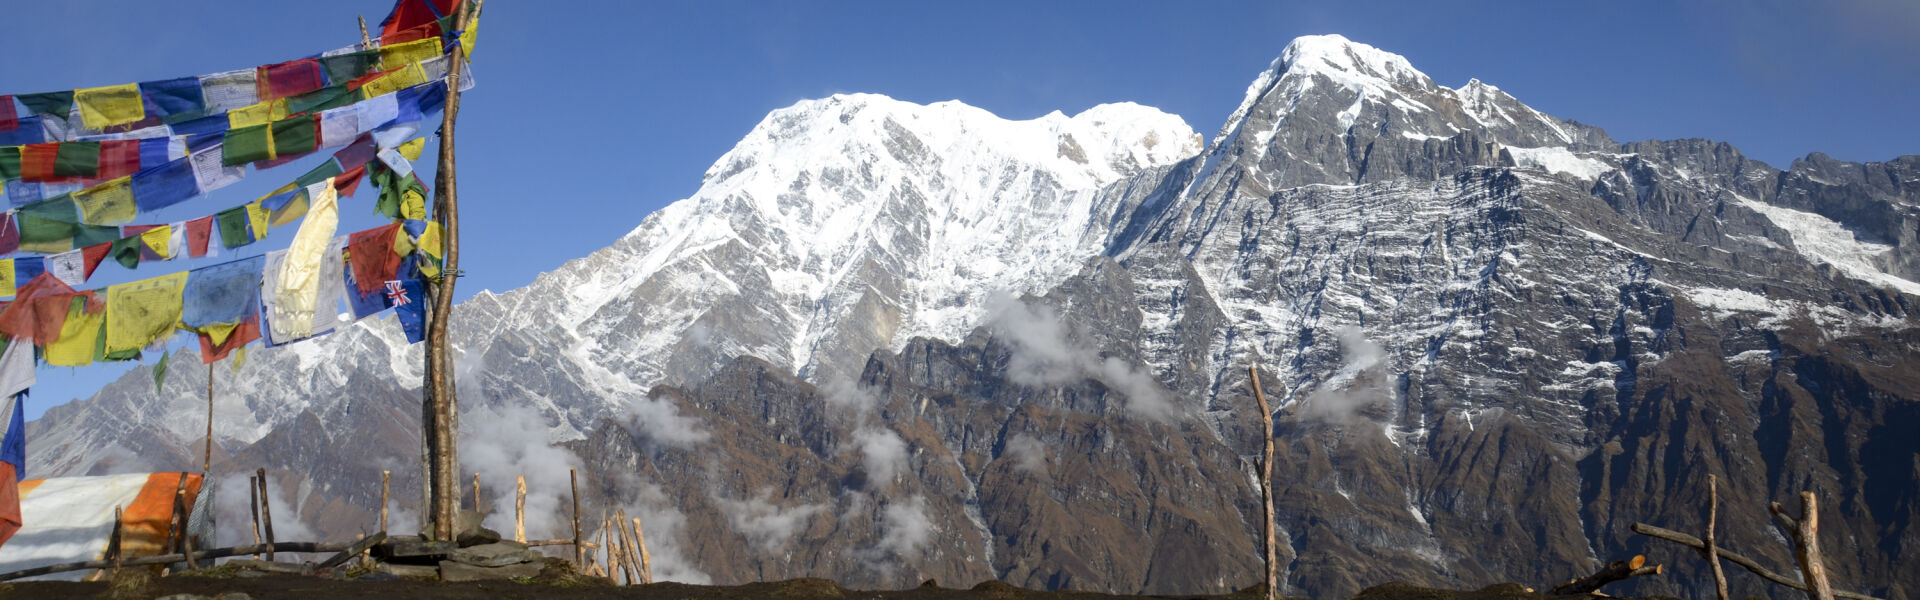 Nepal mountains and clouds